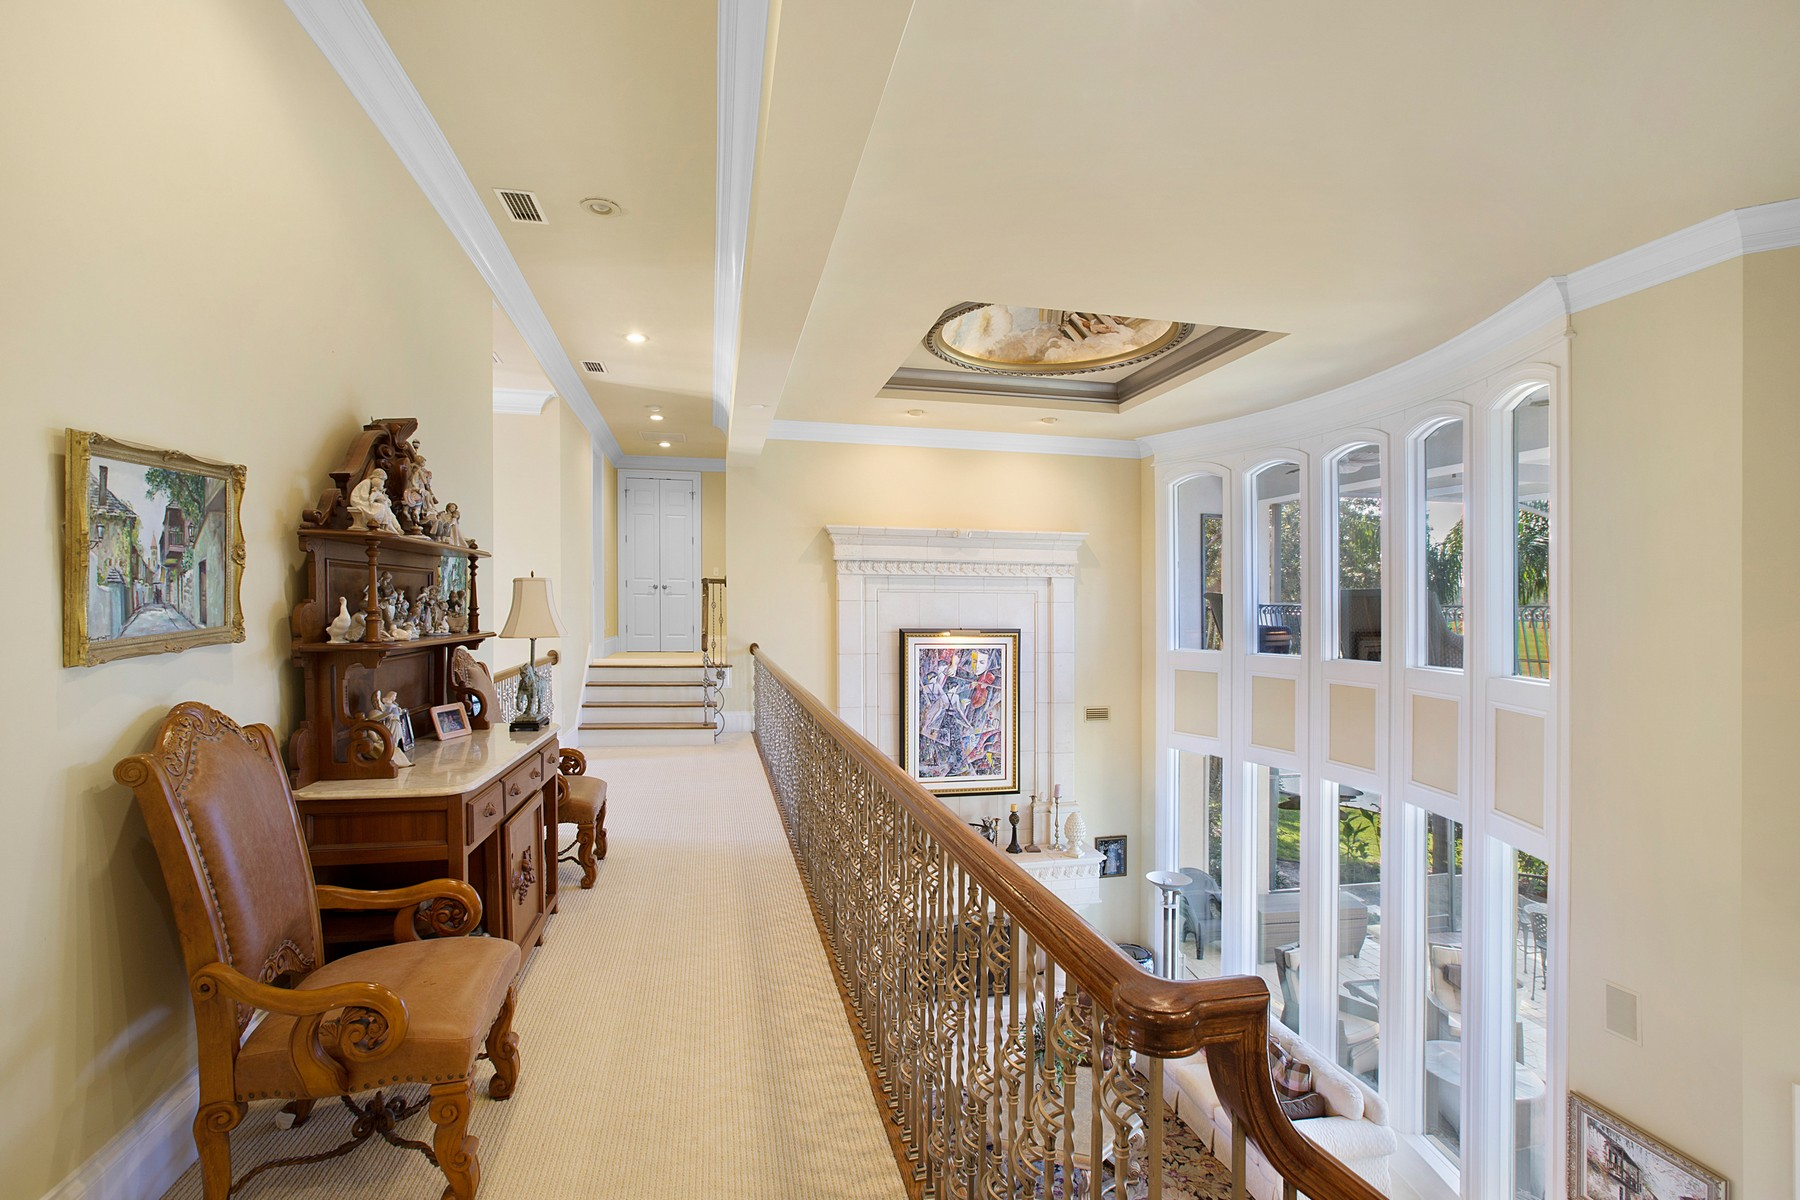 Additional photo for property listing at 140 Muirfield Drive 140 Muirfield Drive Ponte Vedra Beach, Florida 32082 United States